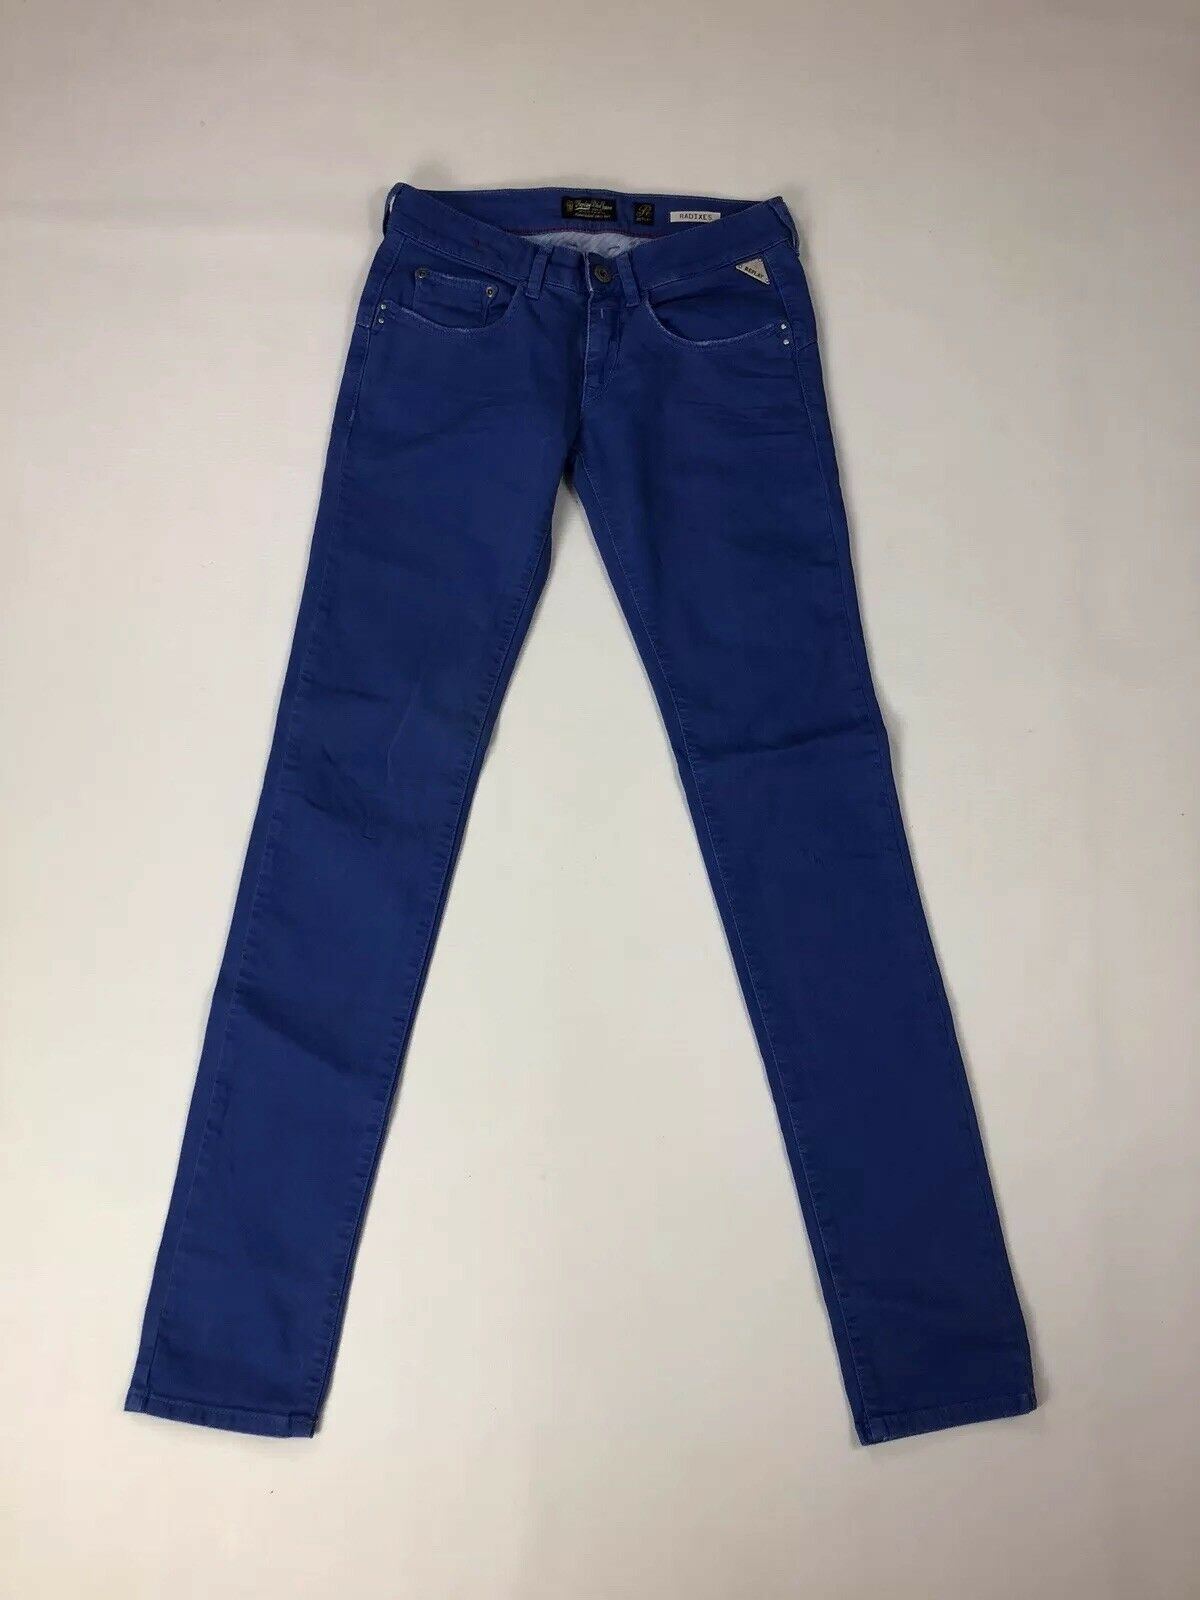 REPLAY RADIXES Jeans - W26 L32 - Skinny - bluee - Great Condition - Women's